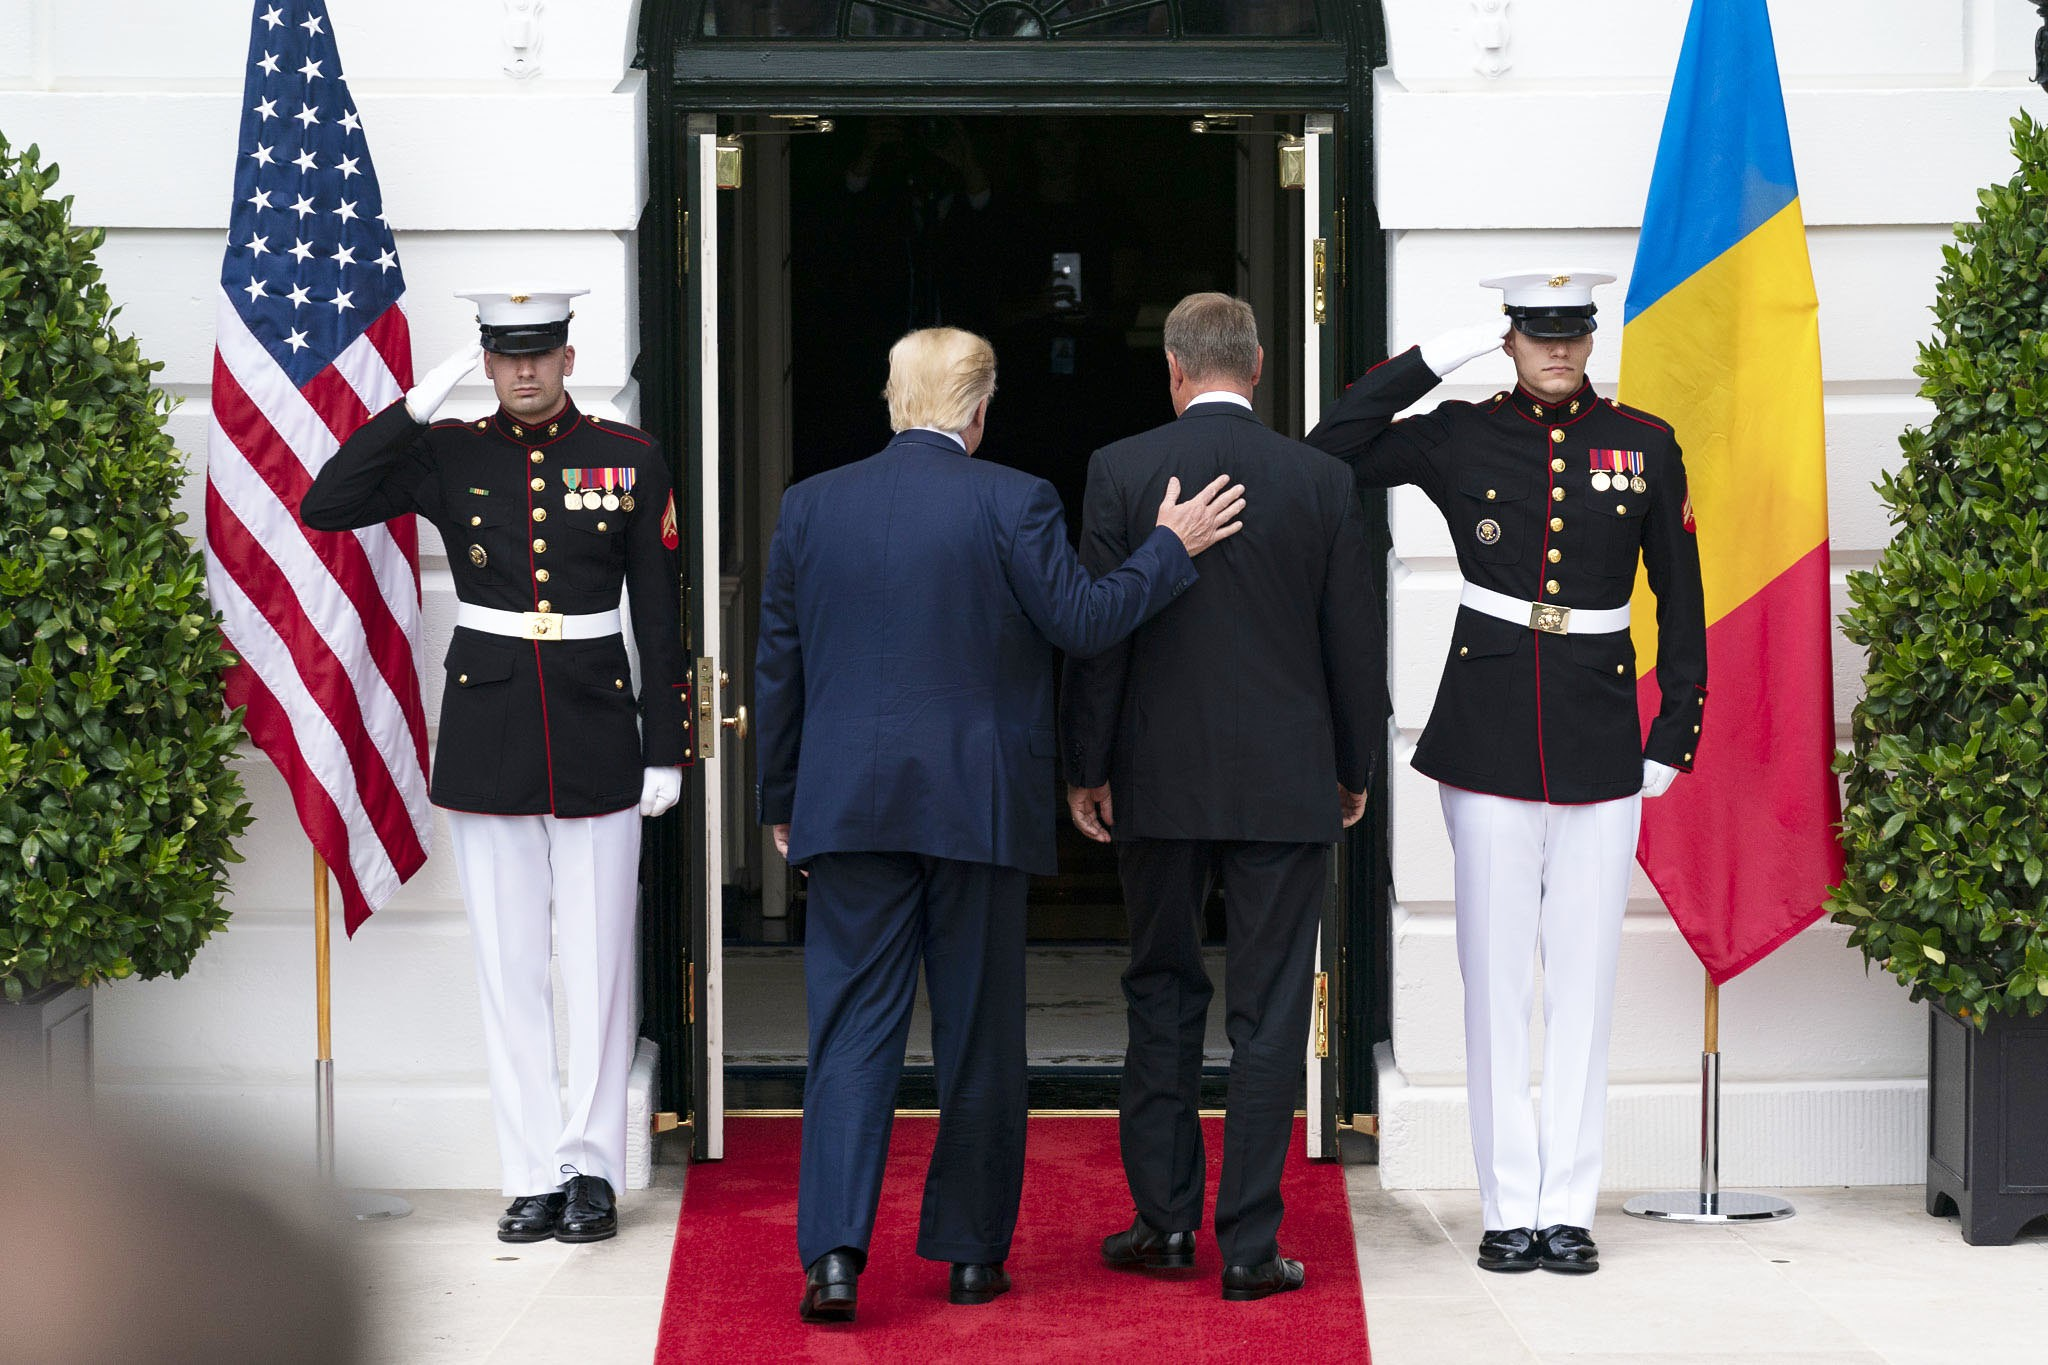 Photo: President Donald J. Trump welcomes Romanian President Klaus Iohannis Tuesday, Aug. 20, 2019, upon his arrival to the South Portico of the White House. Credit: Official White House Photo by Andrea Hanks.